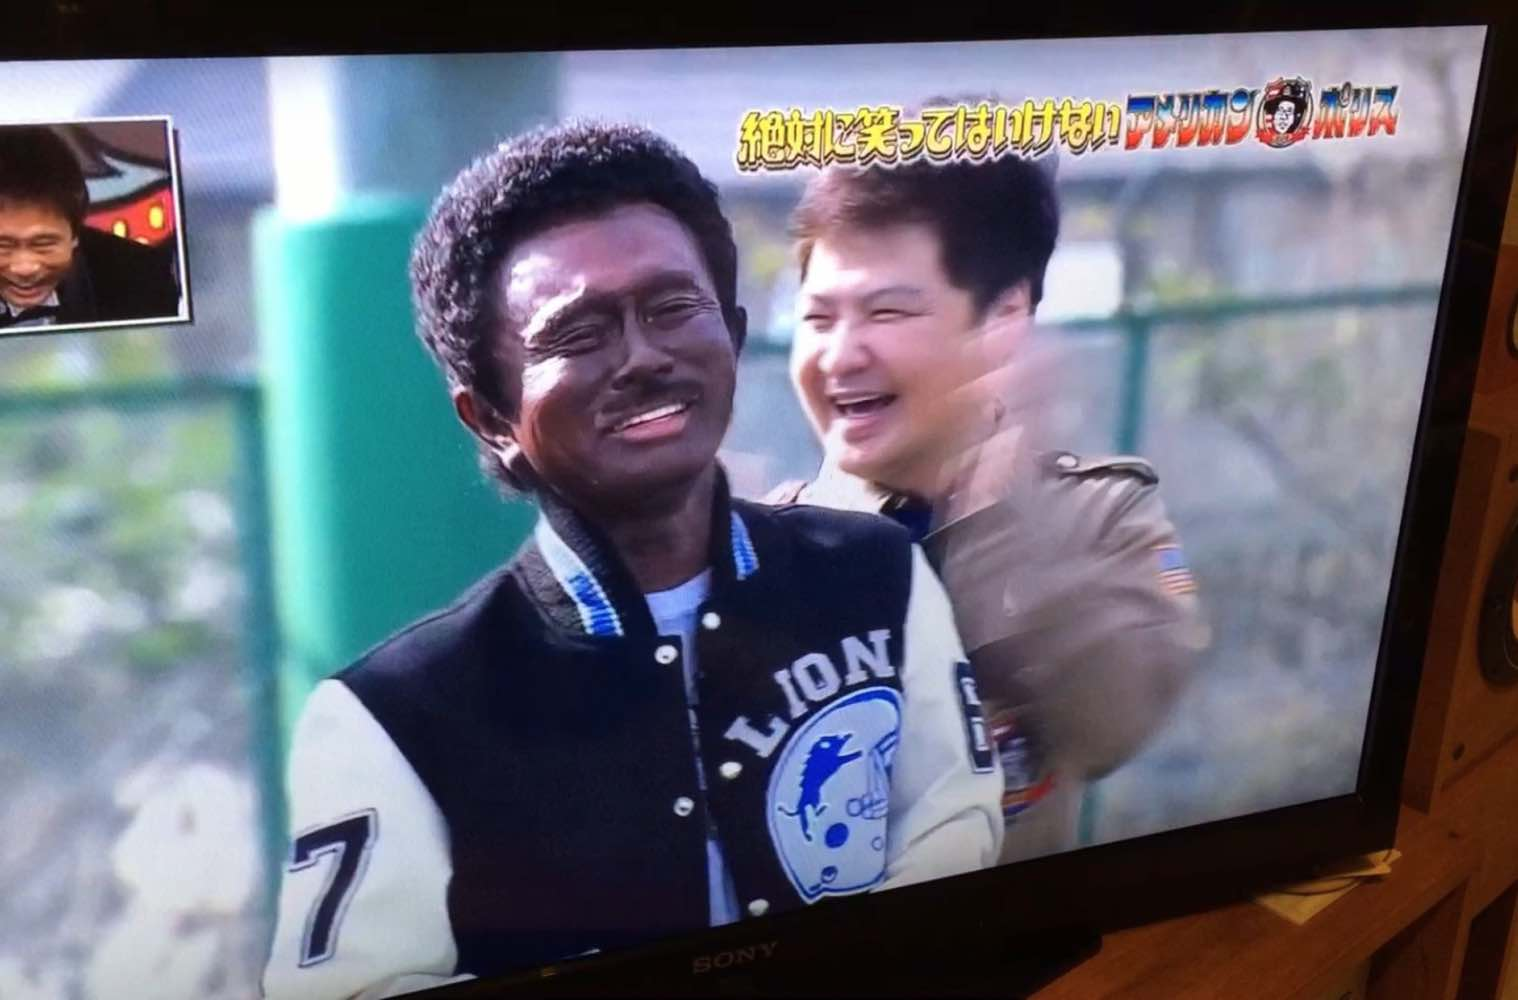 Japanese TV show's 'Eddie Murphy' blackface skit slammed (Watch)